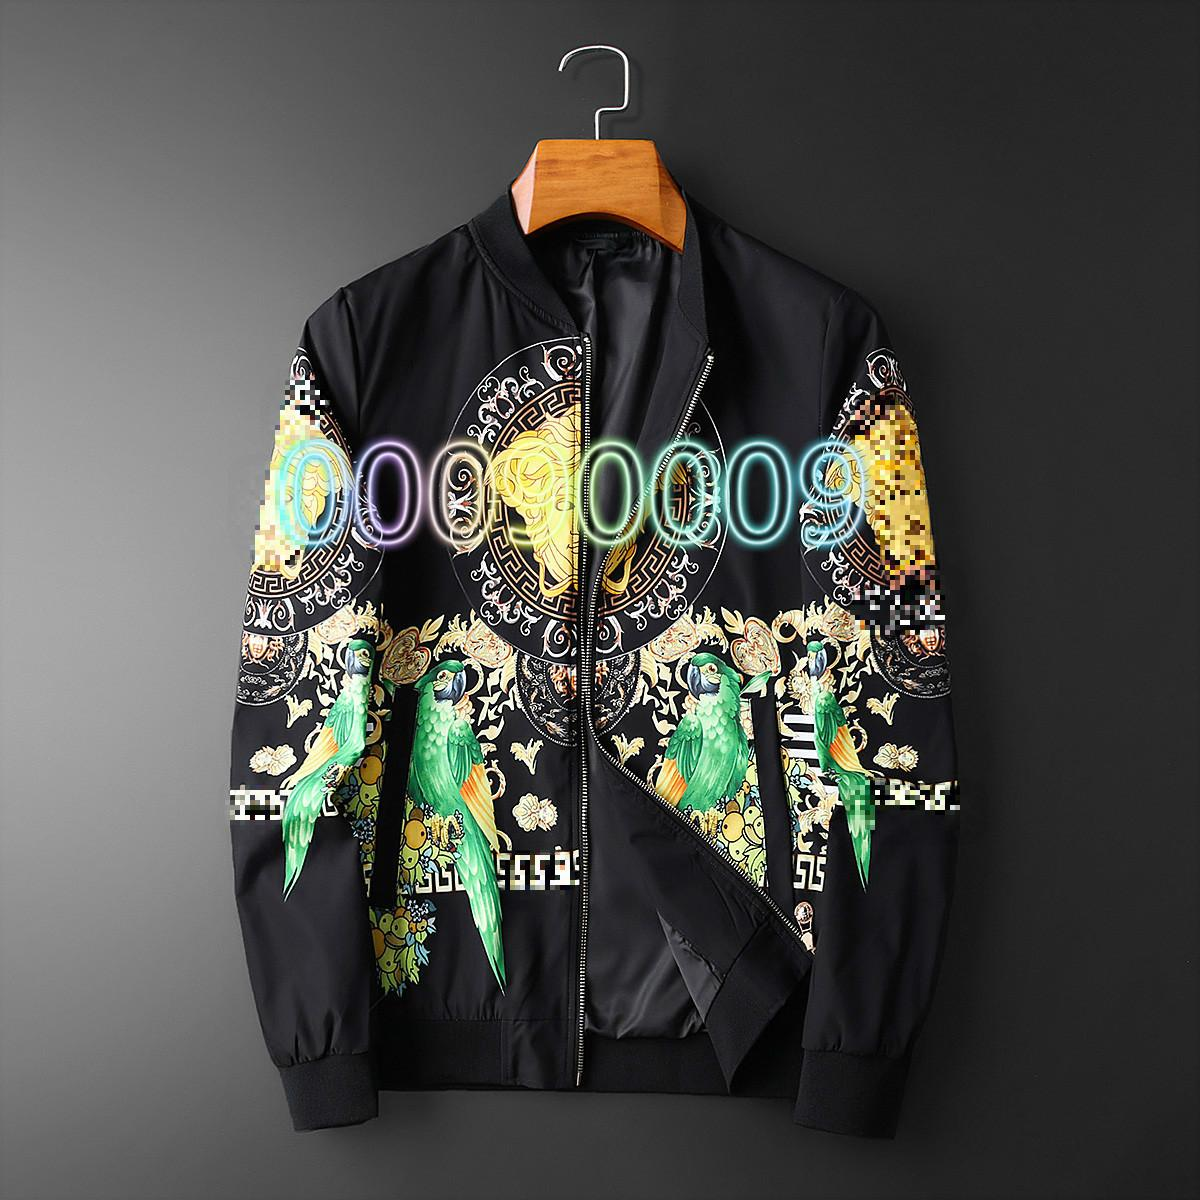 2020 Spring and Autumn New Men's Jacket Korean Long Sleeve Stand Collar Jacket Fashion High-end Sports Casual Men's Trend 001001